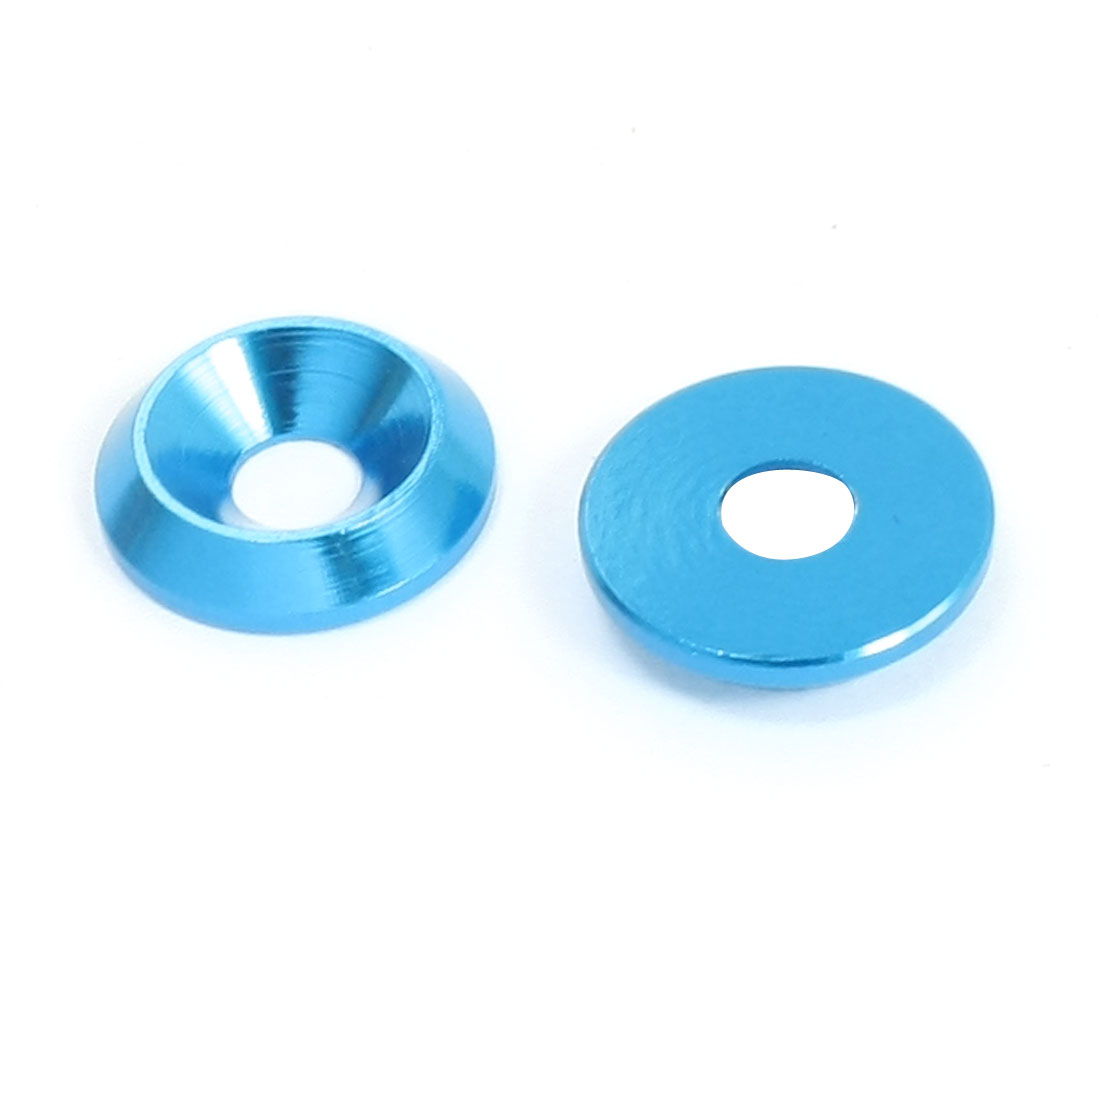 2 Pcs Replacement Blue Aluminium Alloy RC Spacer Washer 5mm x 16mm x 3.5mm